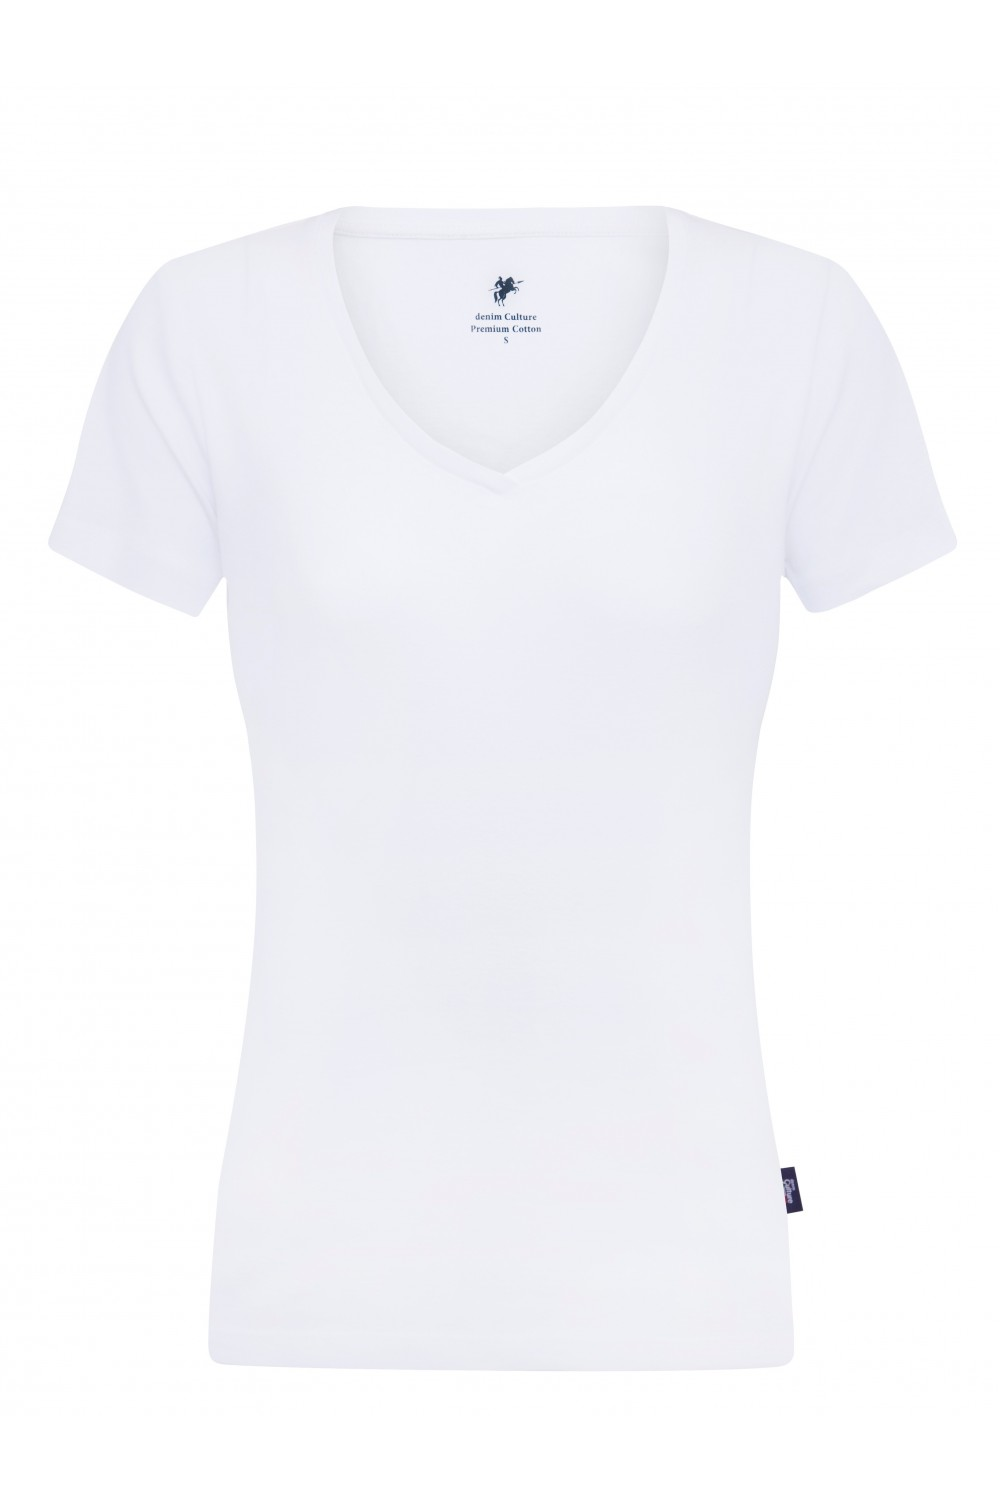 Women's T-Shirt V-neck White Cotton